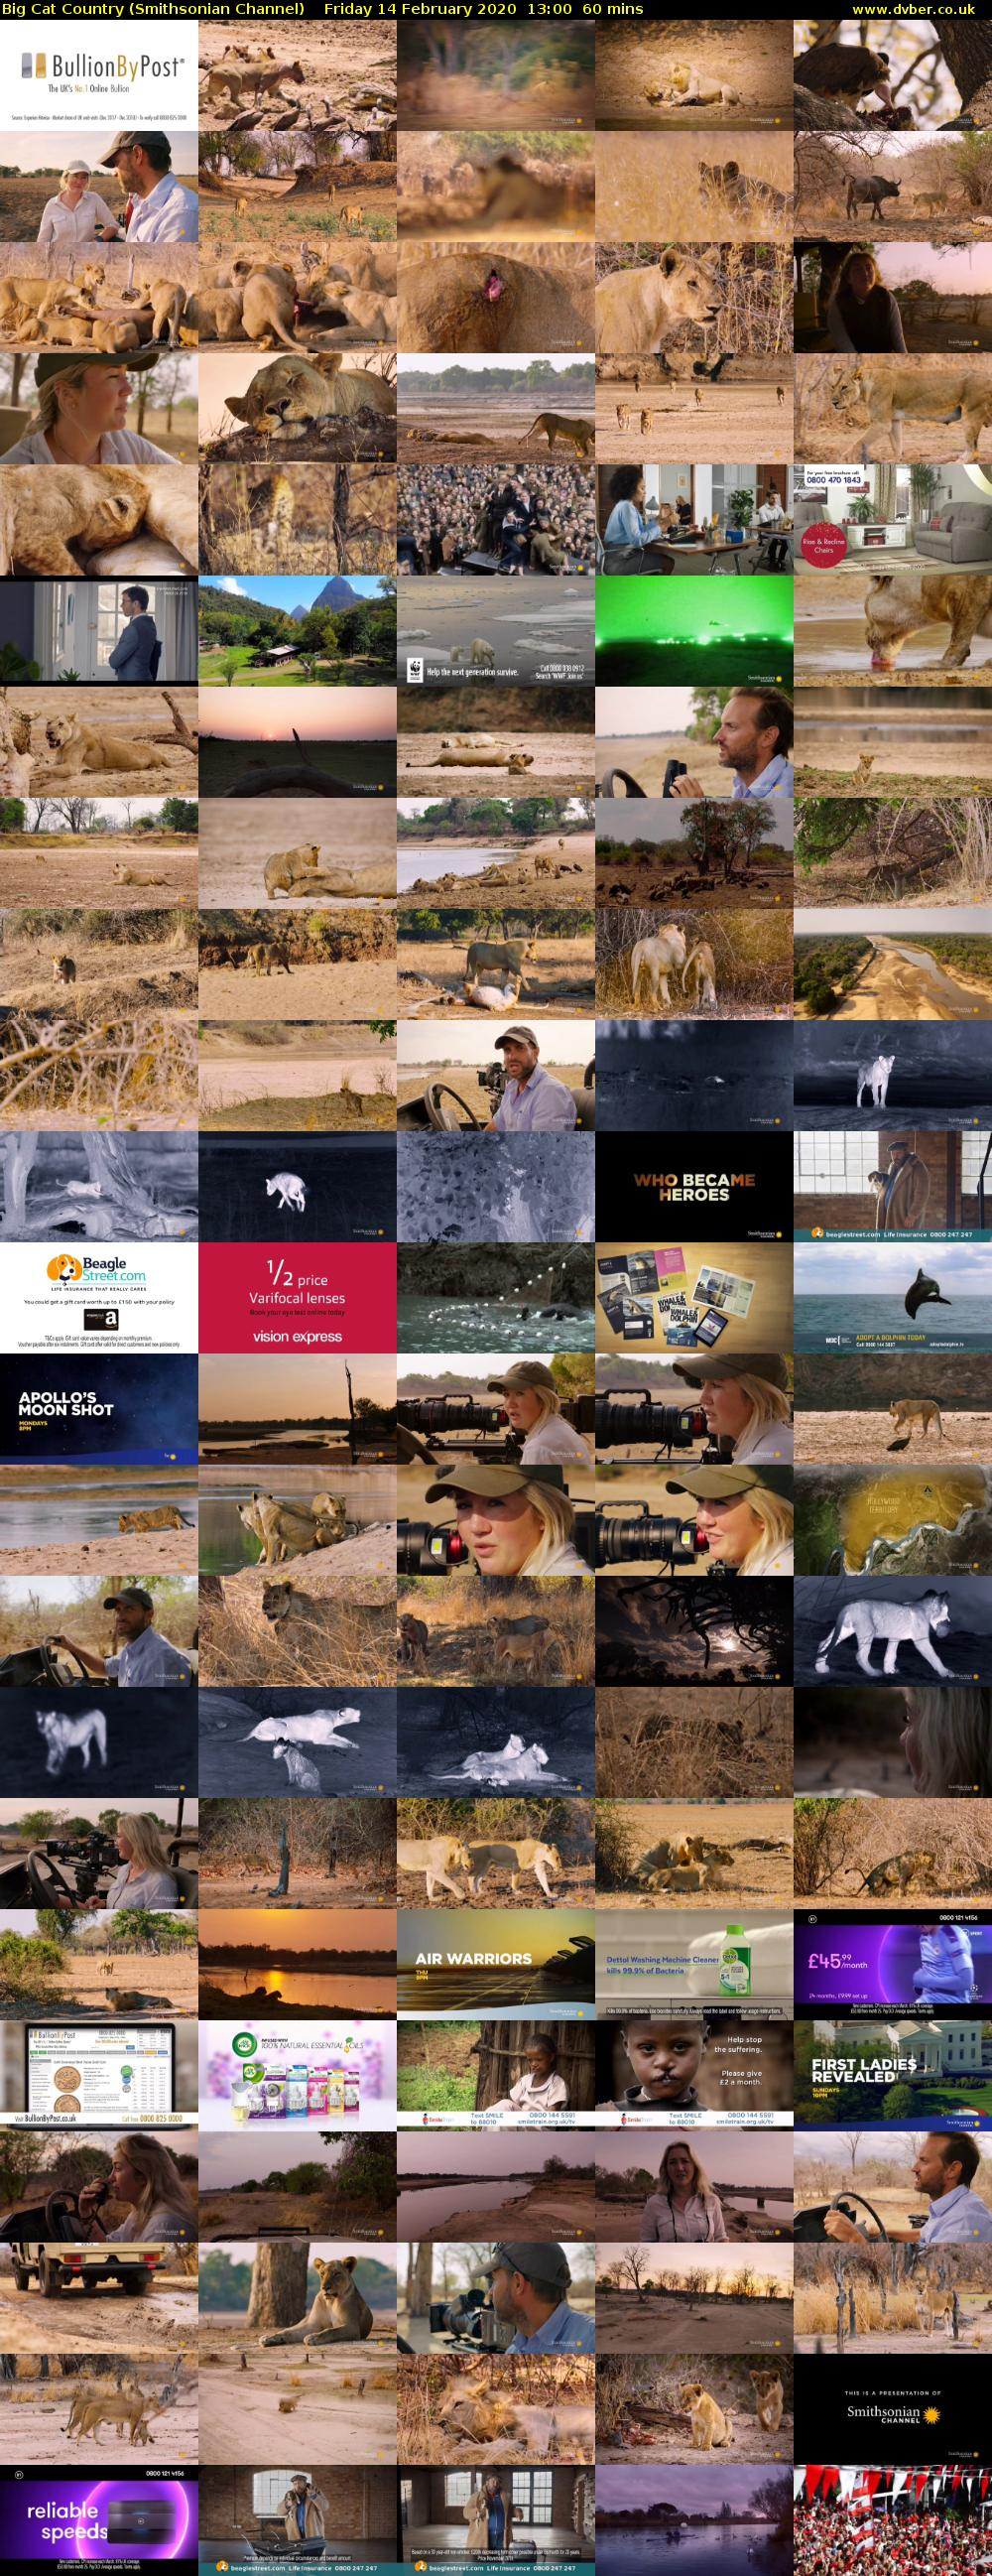 Big Cat Country (Smithsonian Channel) Friday 14 February 2020 13:00 - 14:00